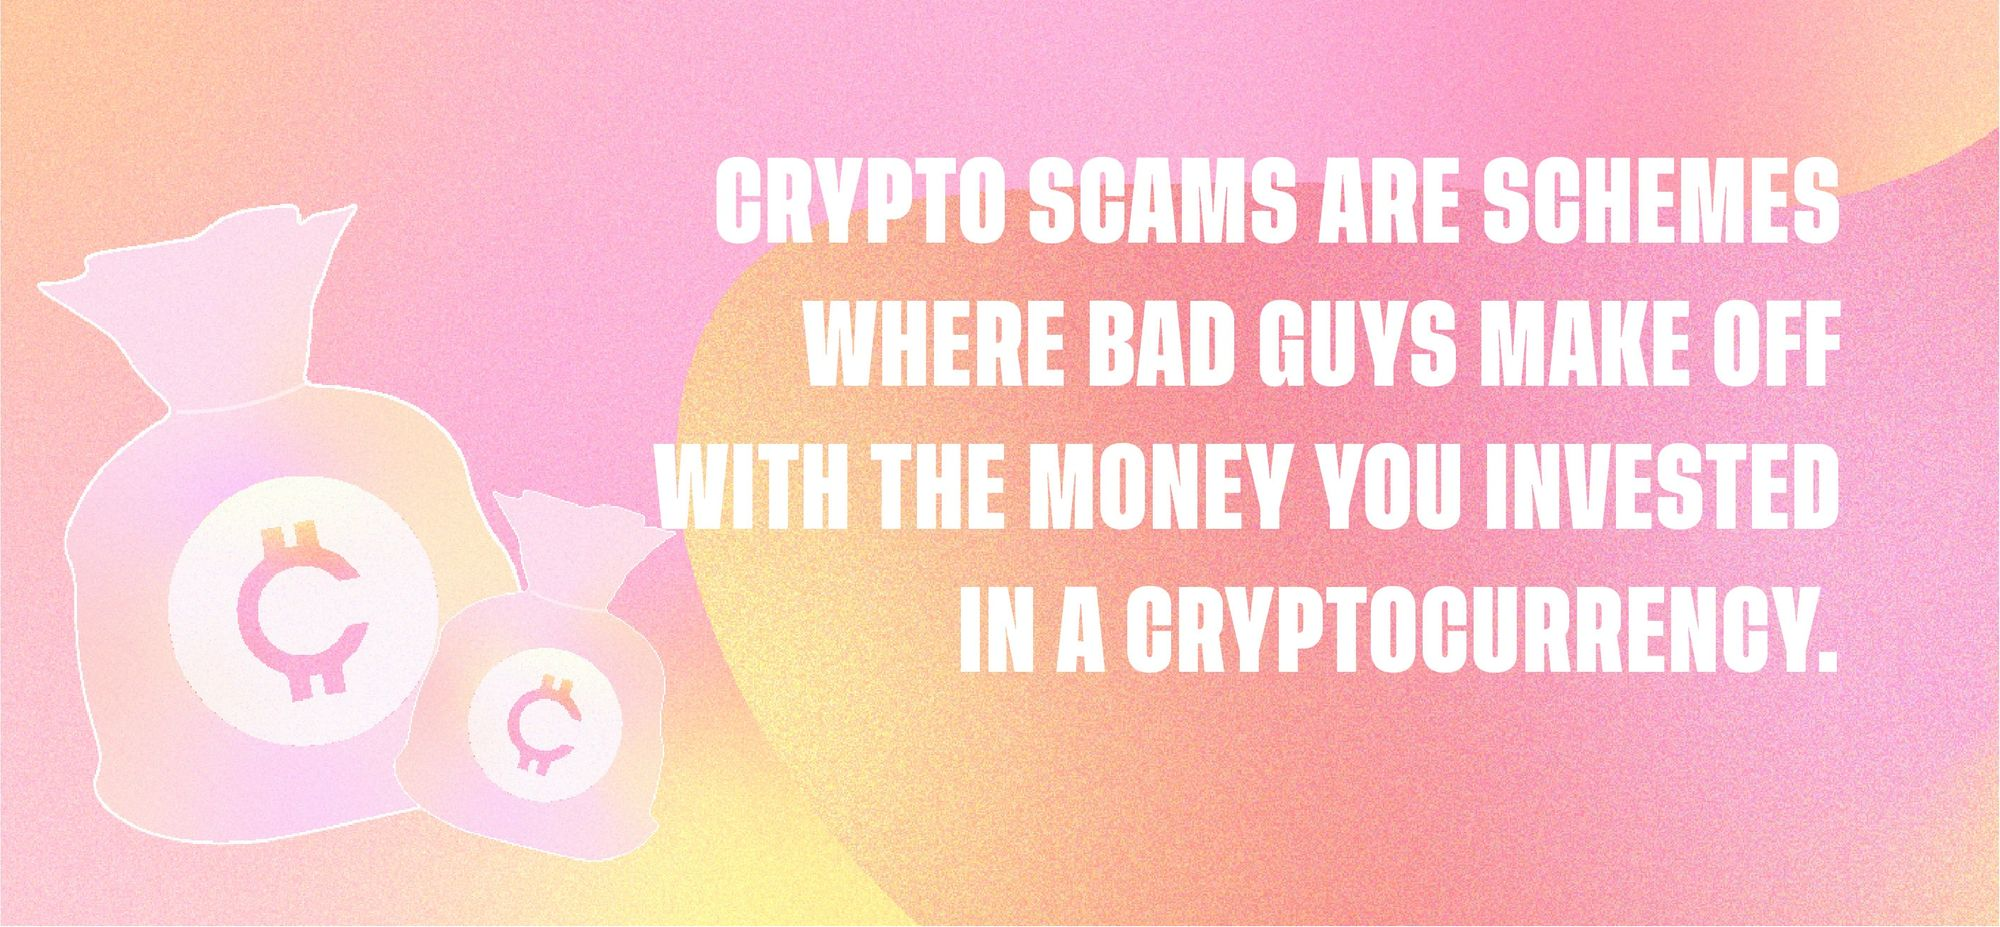 Crypto scams are schemes where bad guys make off with the money you invested in cryptocurrency